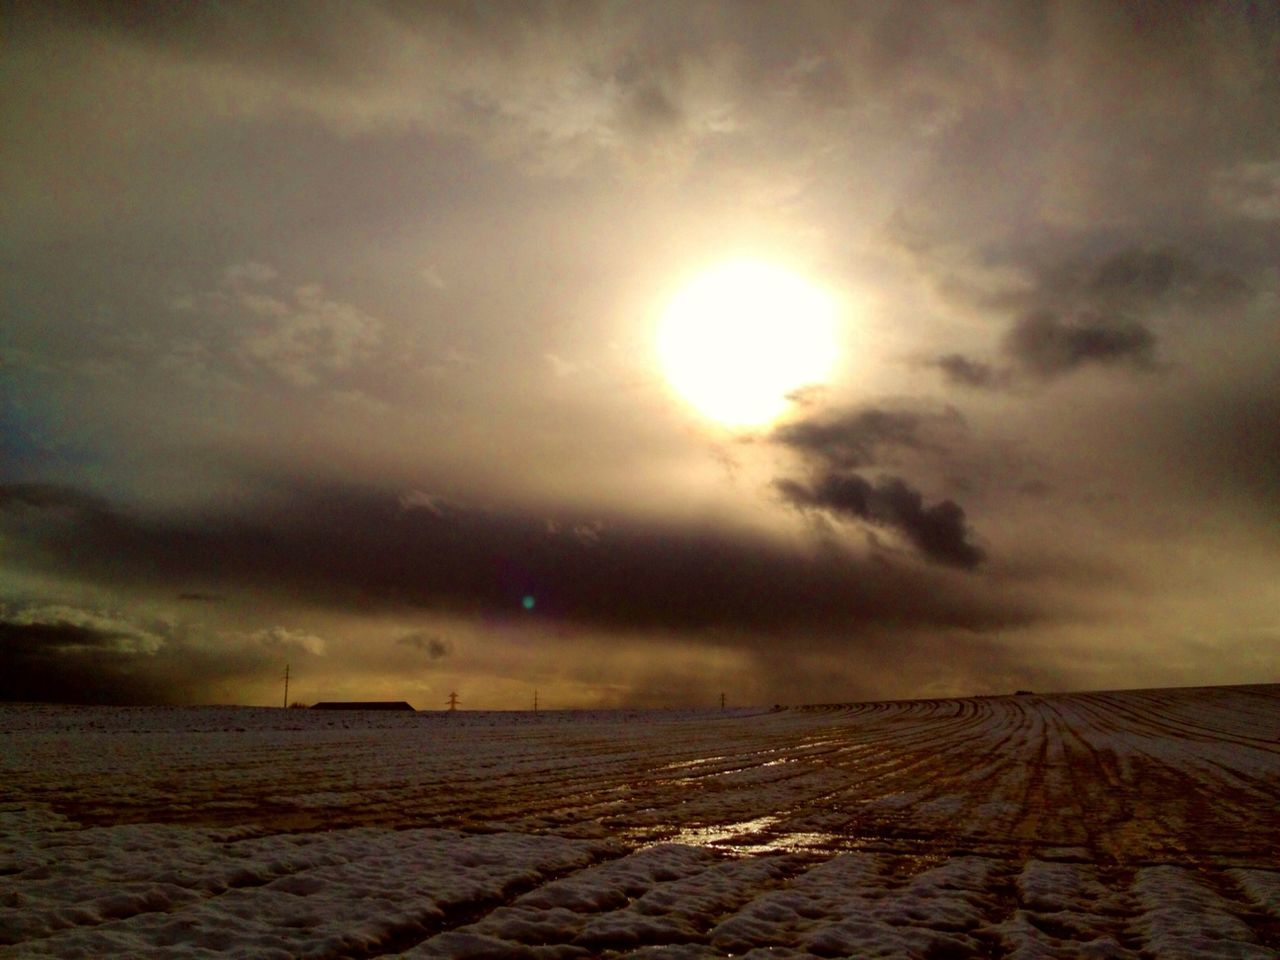 nature, tranquil scene, sky, scenics, sunset, beauty in nature, sun, tranquility, cloud - sky, landscape, weather, outdoors, field, no people, agriculture, rural scene, winter, day